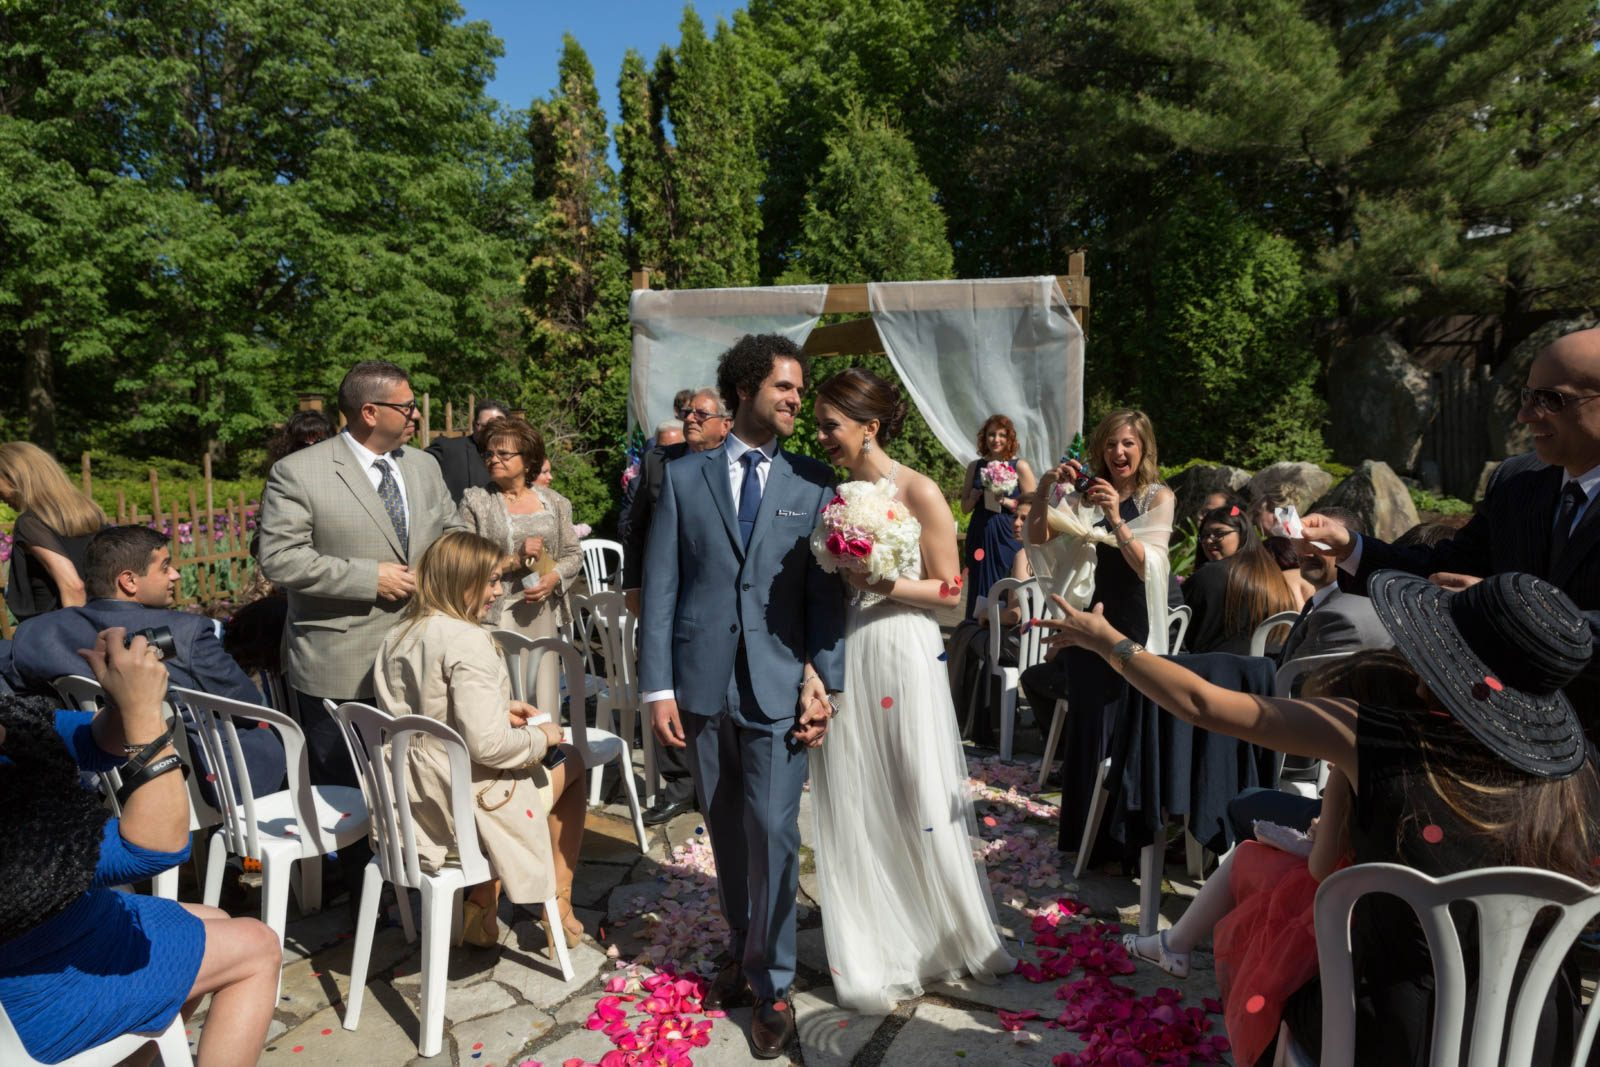 La Toundra wedding ceremony outdoor in Montreal